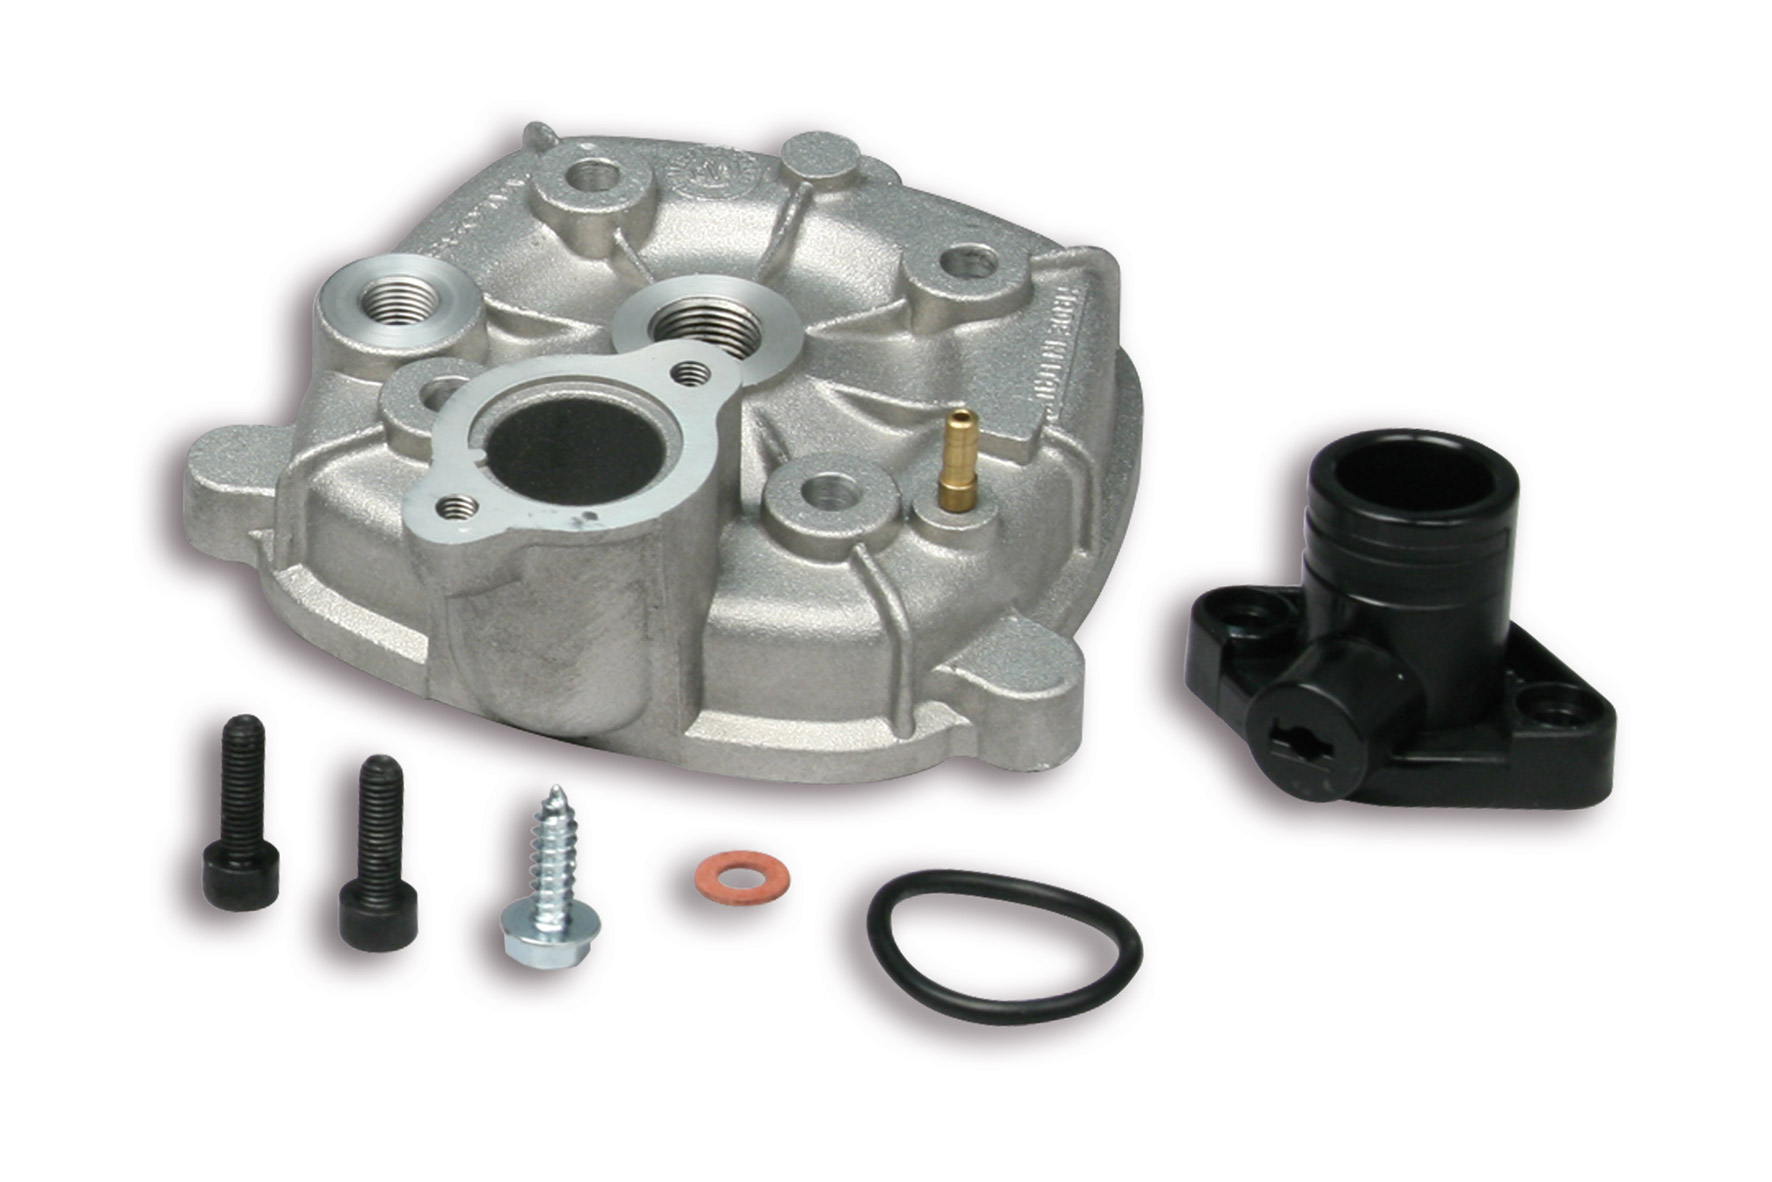 ALUM. CYL.HEAD Ø 40 H2O HTSR MHR - spare part for Malossi cylinder kit 31 8865 - out of production